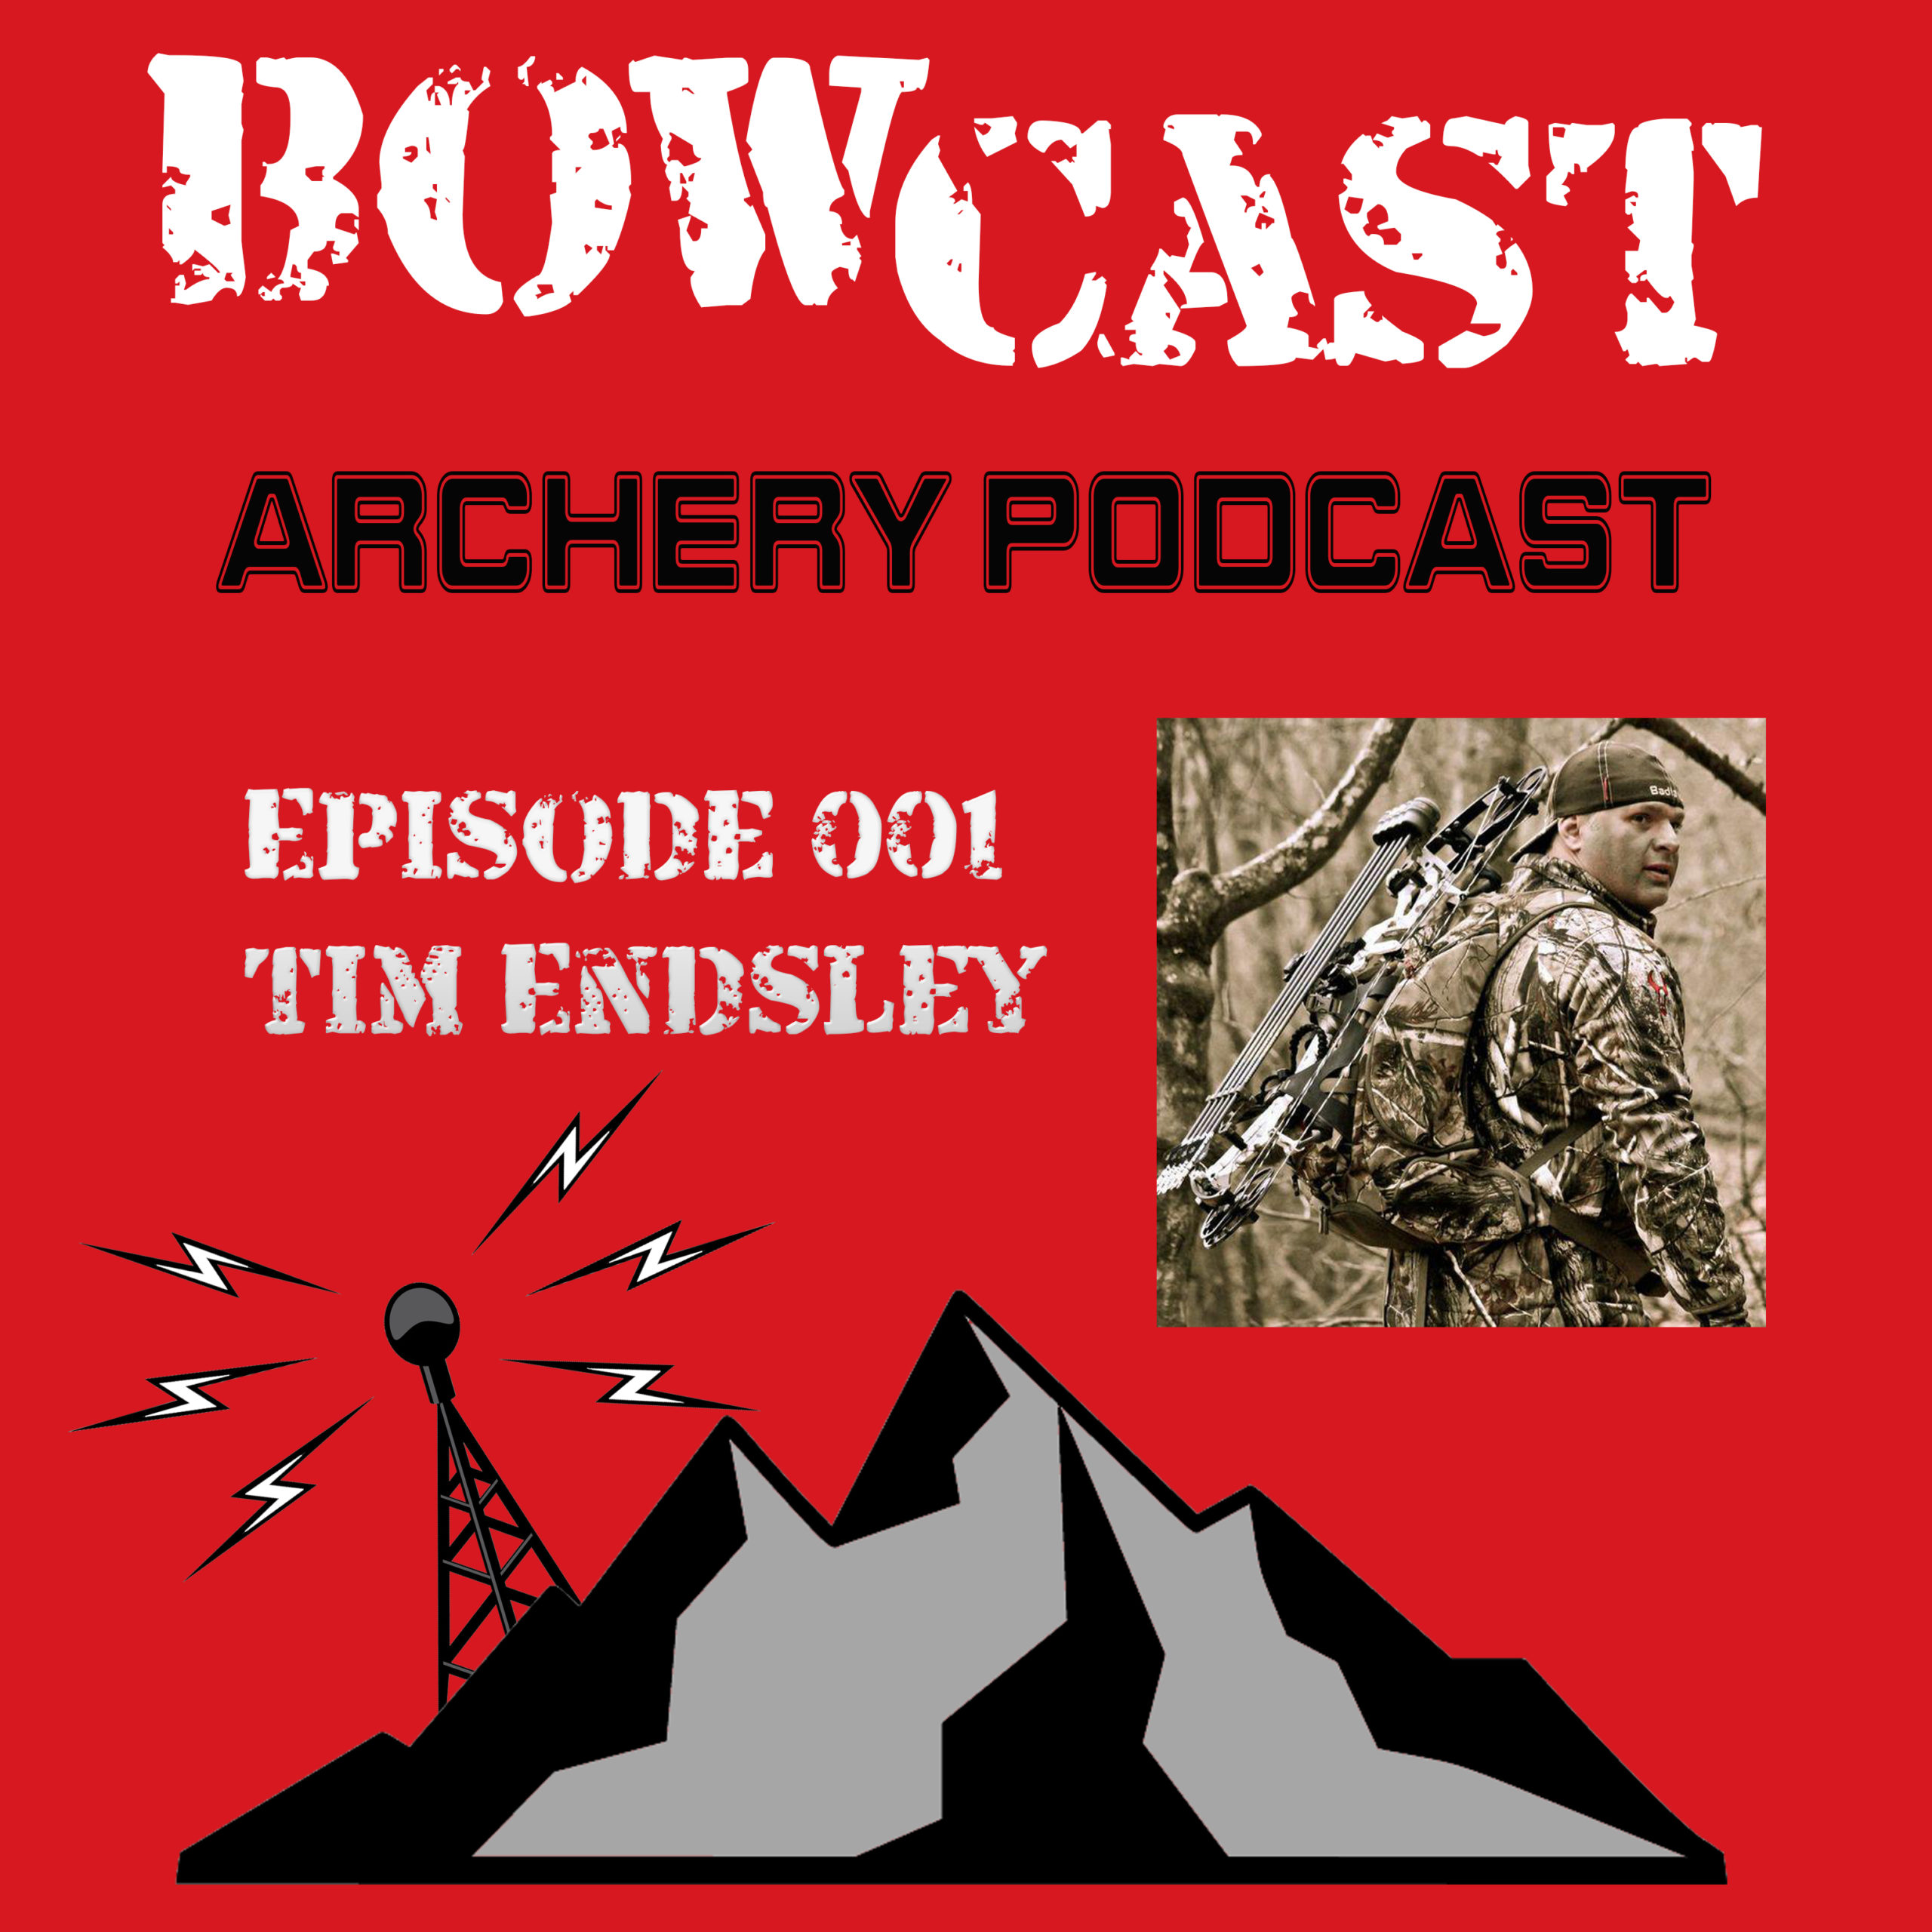 Bowcast Archery Podcast 001 - Time Endsley - The Story of the BowCast Archery Podcast Relaunch